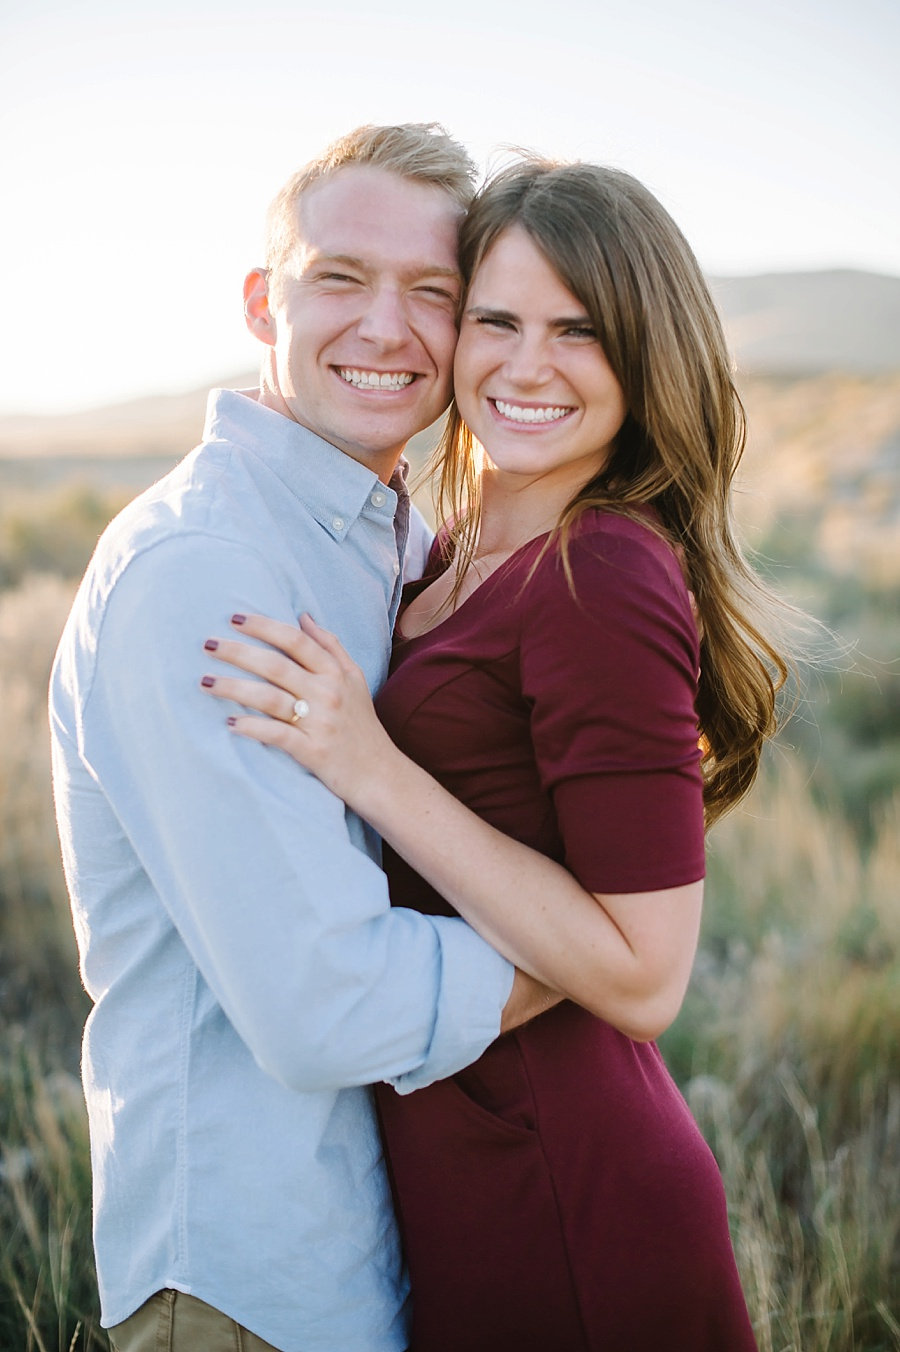 SLC Utah Engagement Photographer Ali Sumsion 009